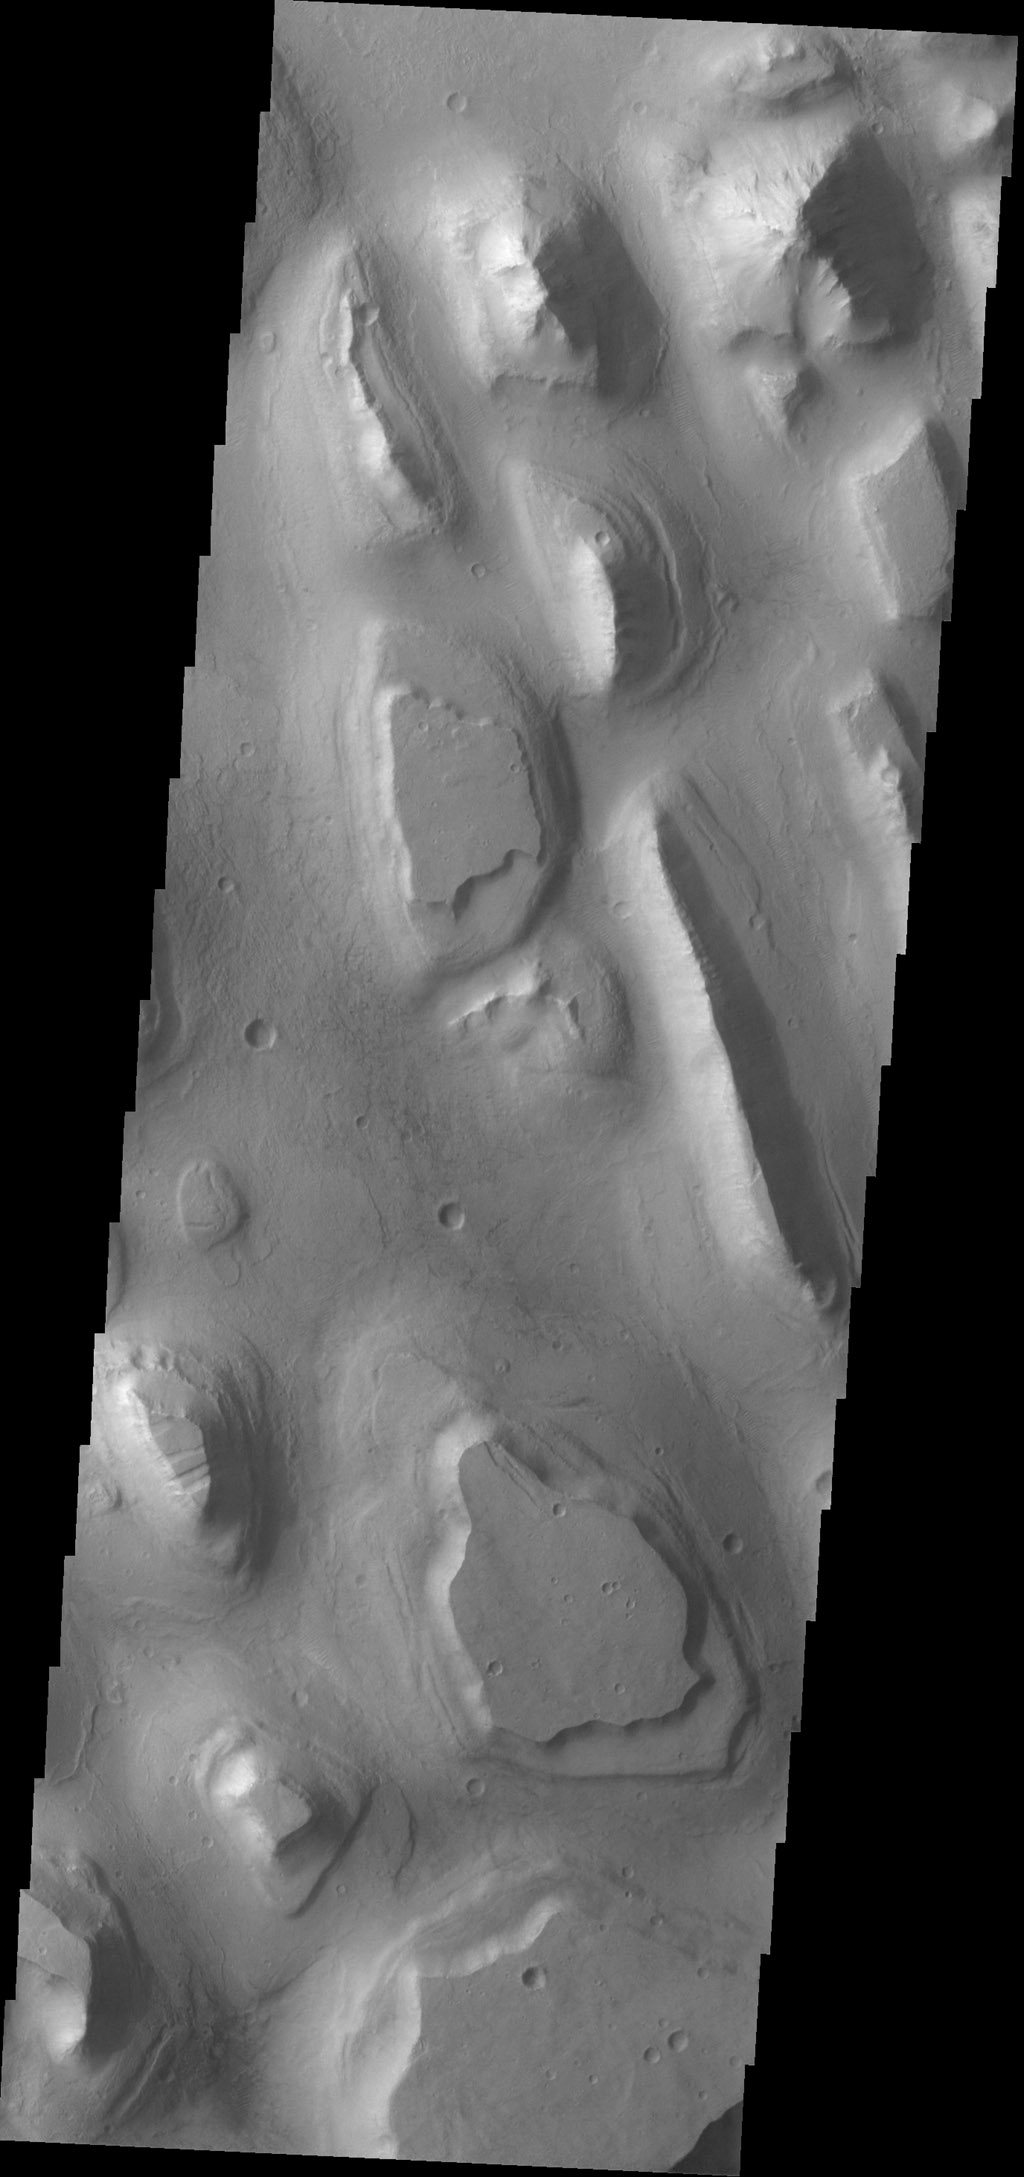 The ridges and mesas in this image captured by NASA's 2001 Mars Odyssey spacecraft are part of Hydraotes Chaos.